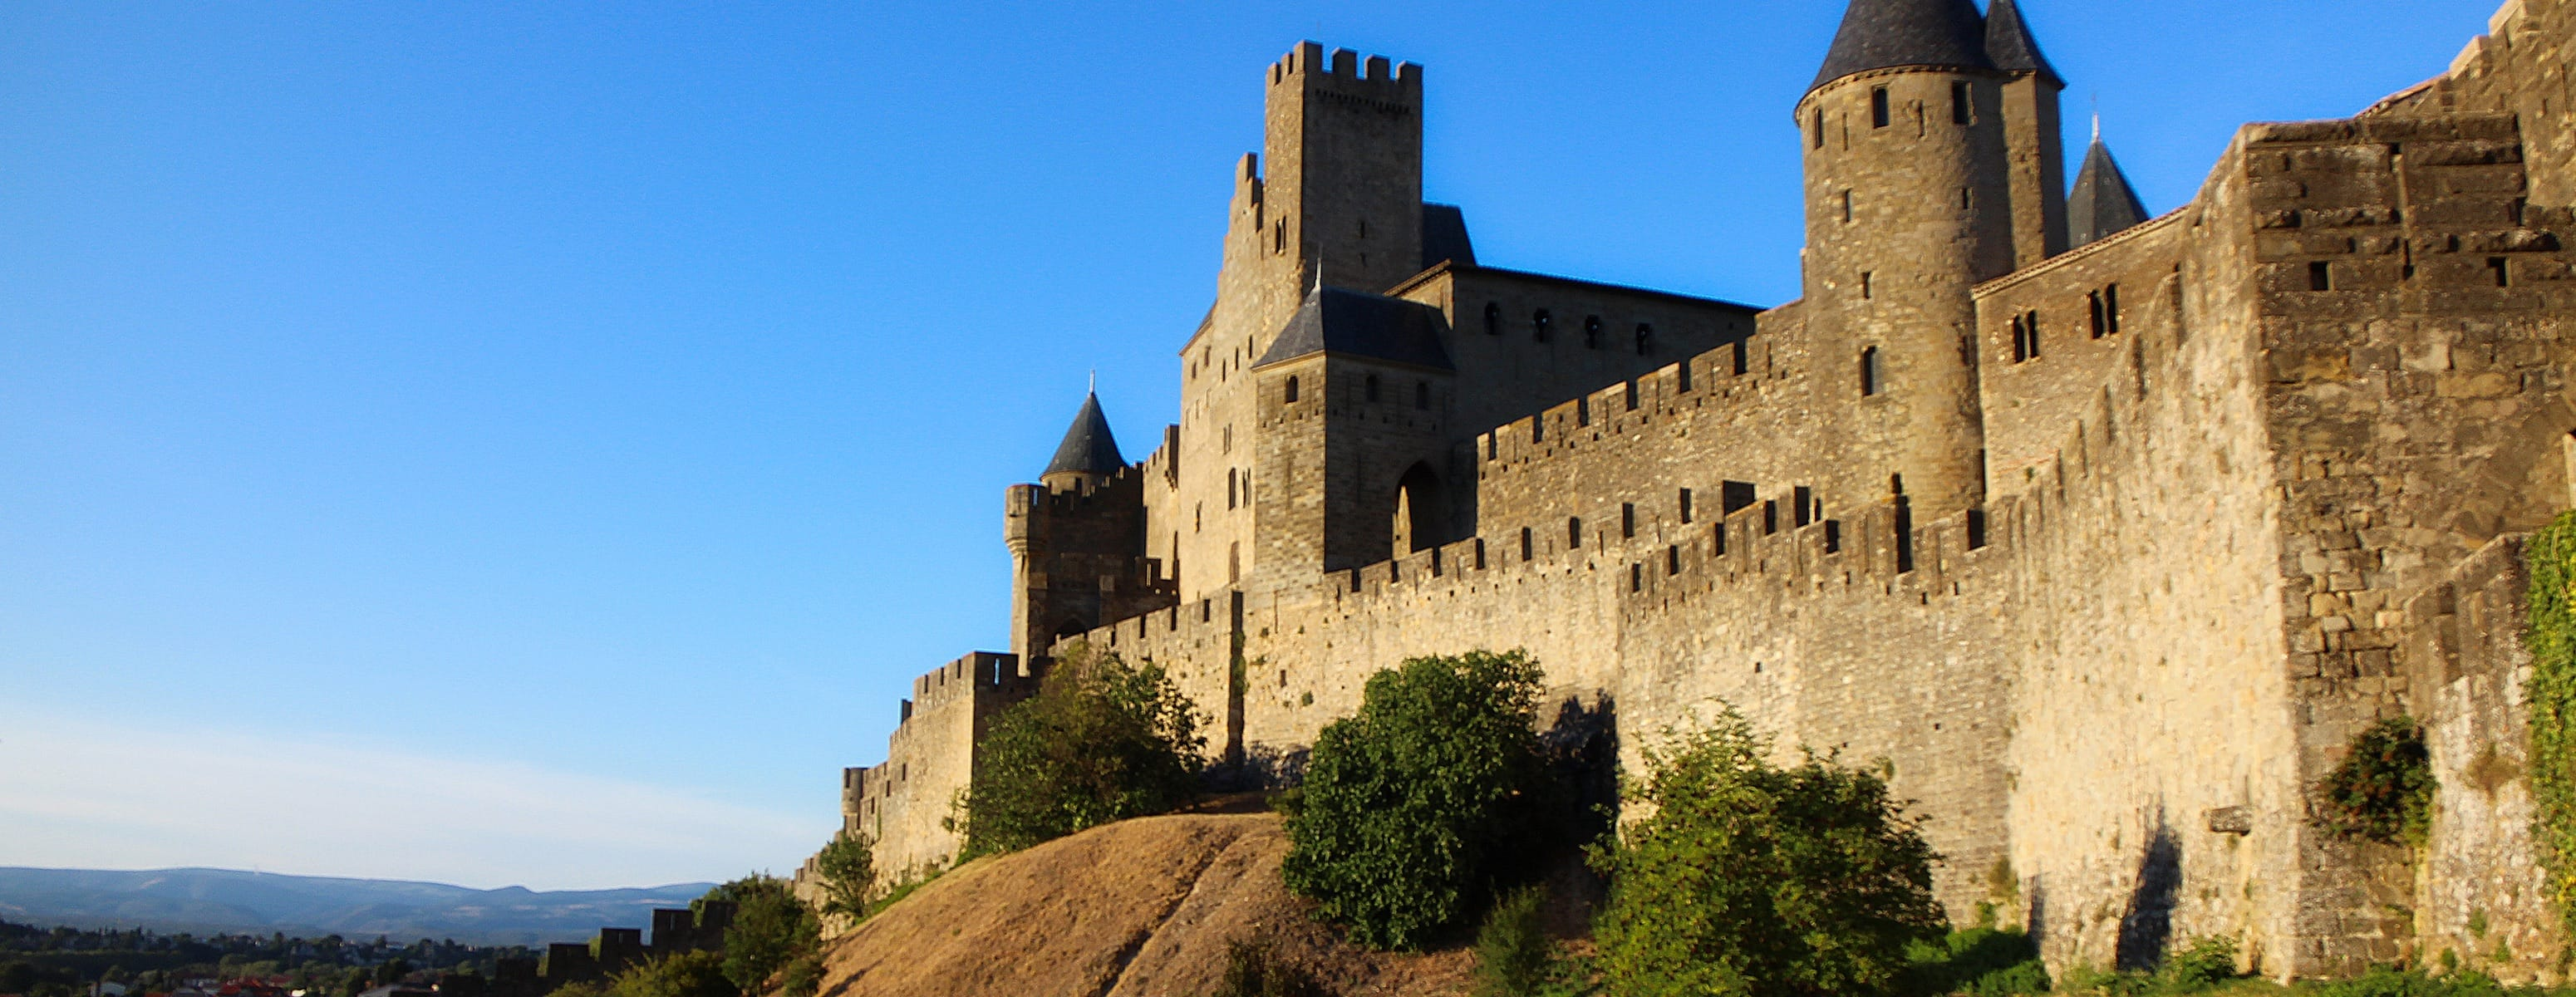 Vacation rentals in Carcassonne